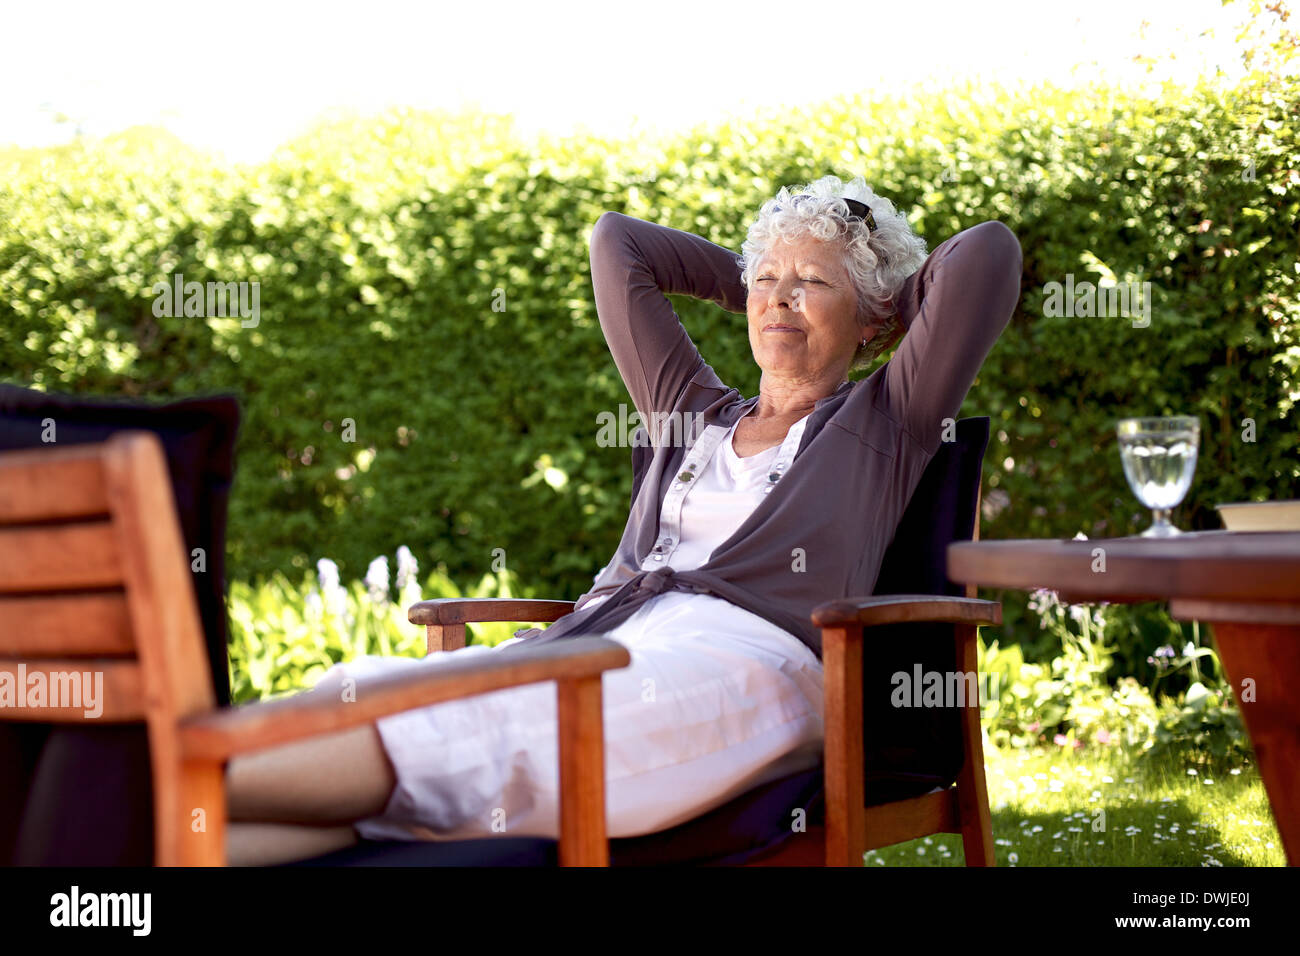 Senior woman sitting on a chair and taking a nap in backyard. Elder woman sleeping in backyard garden - Stock Image